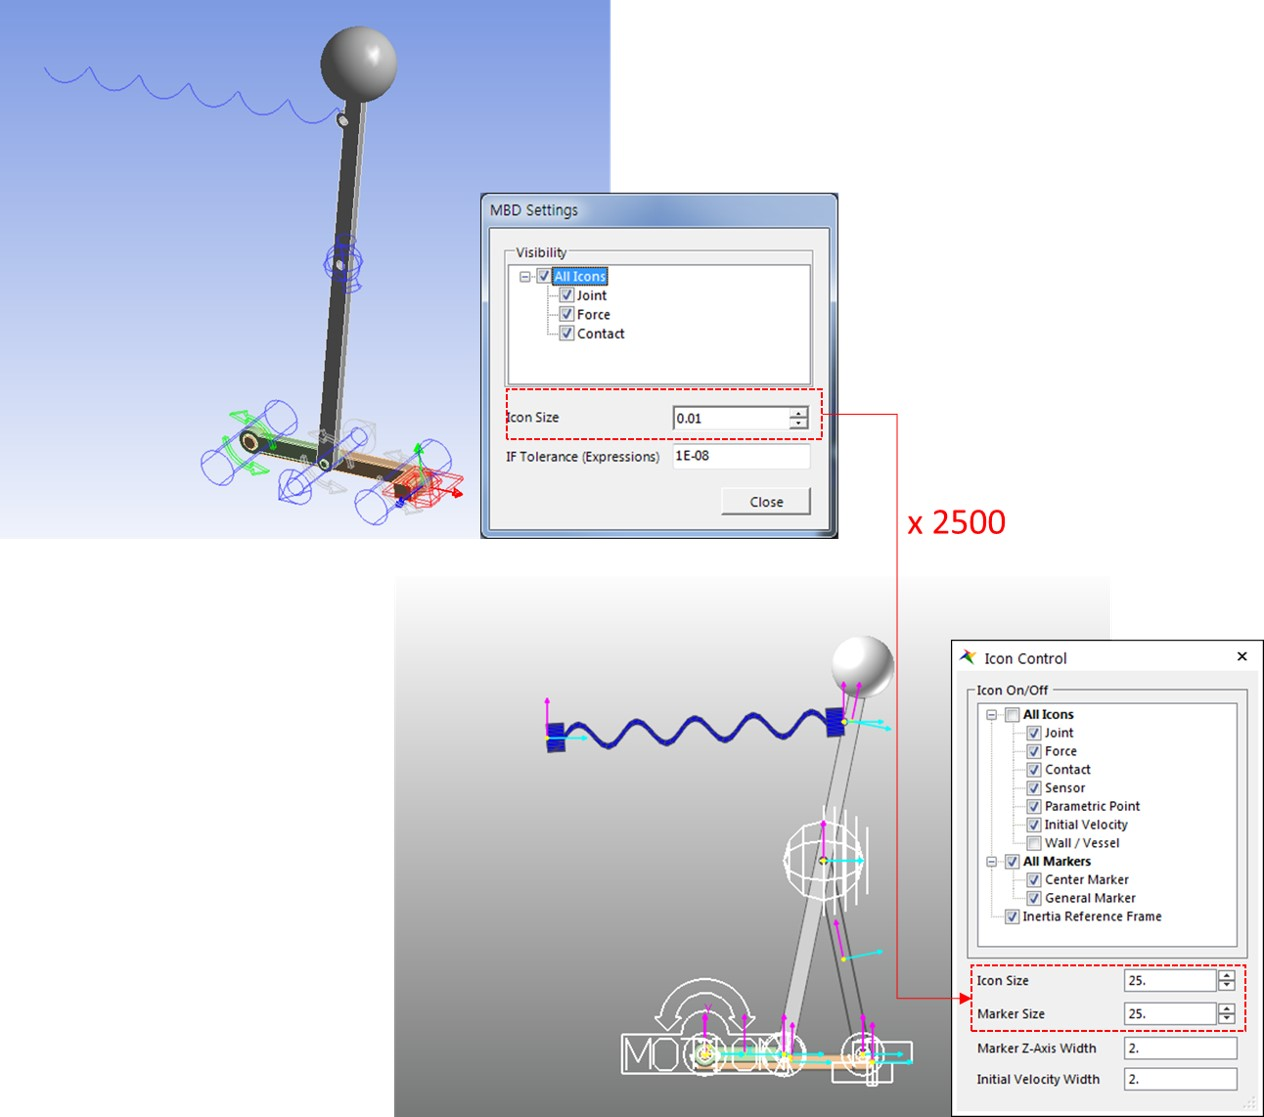 MBD for ANSYS 2019 R3 - motion analysis - Marker and Icon size